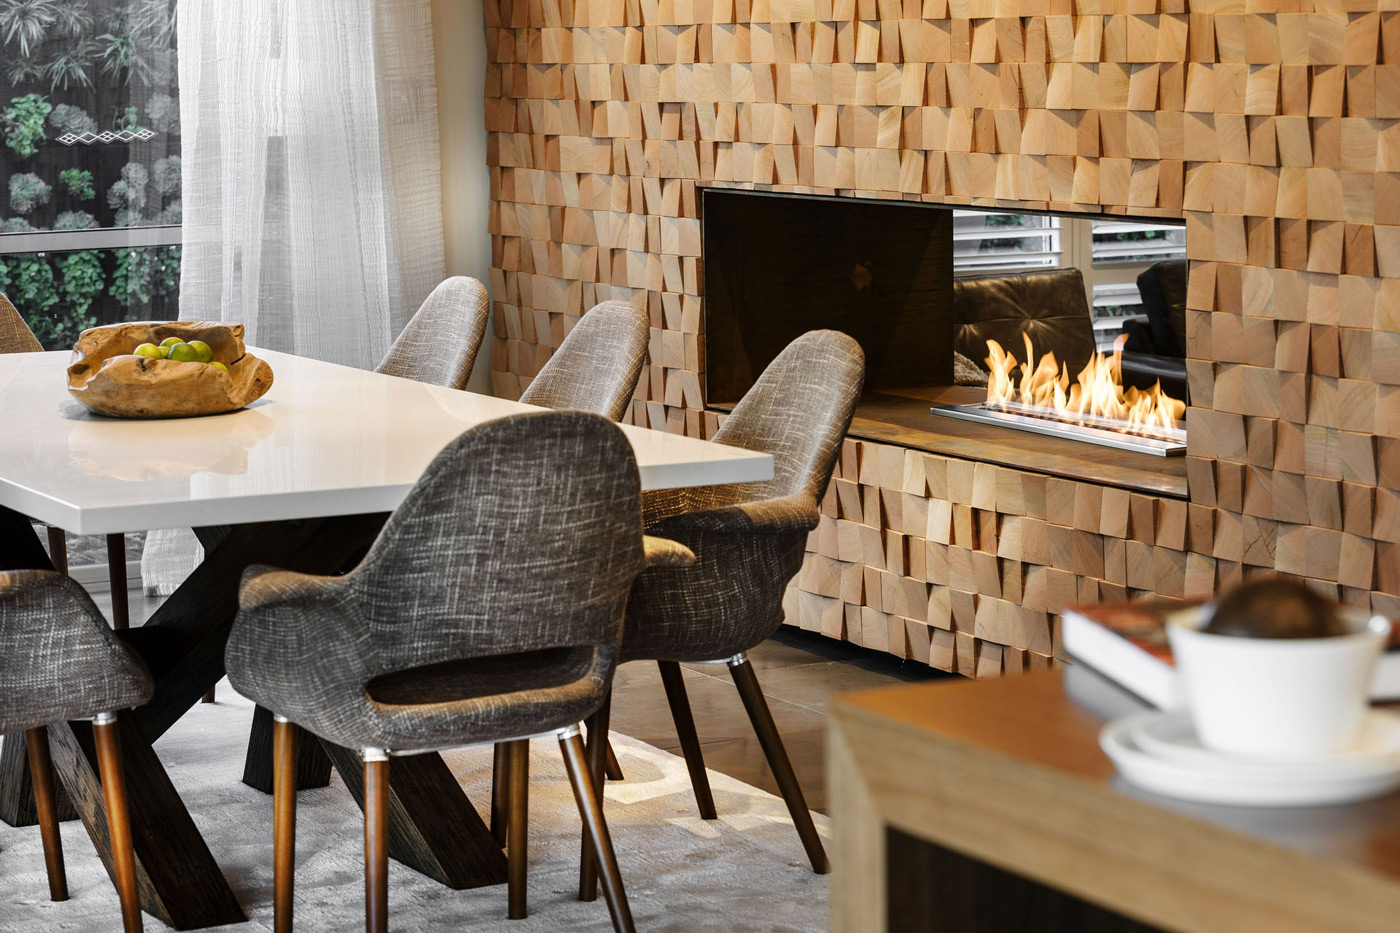 Dining, Table, Fireplace, Modern Home in Wandi, Perth